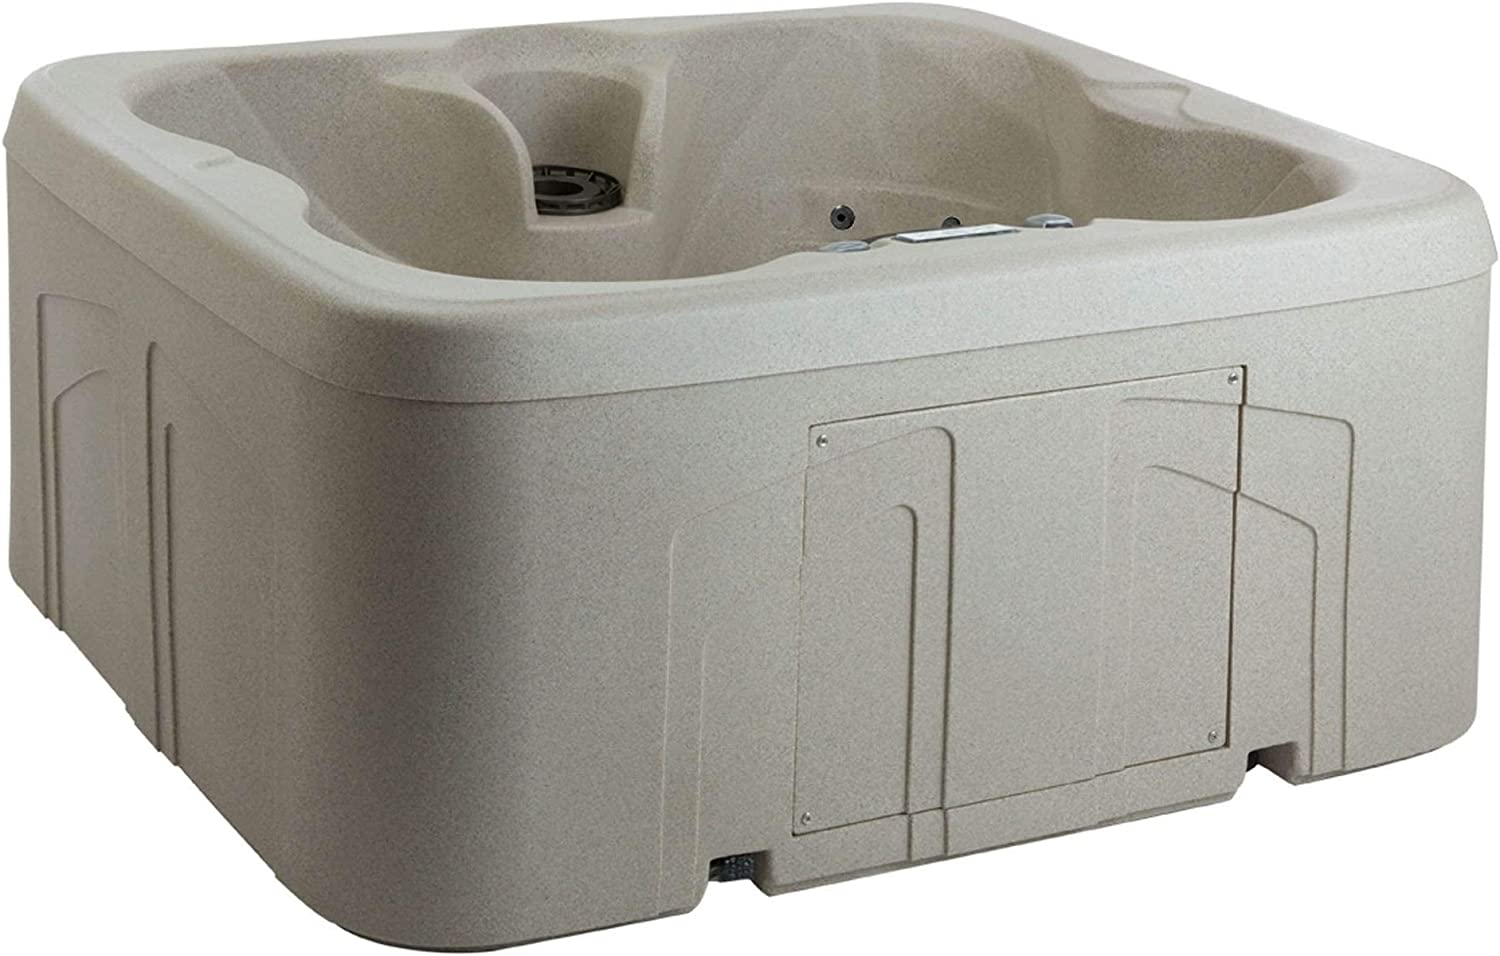 1. LifeSmart Simplicity Rock-Solid Plug and Play Hot Tub